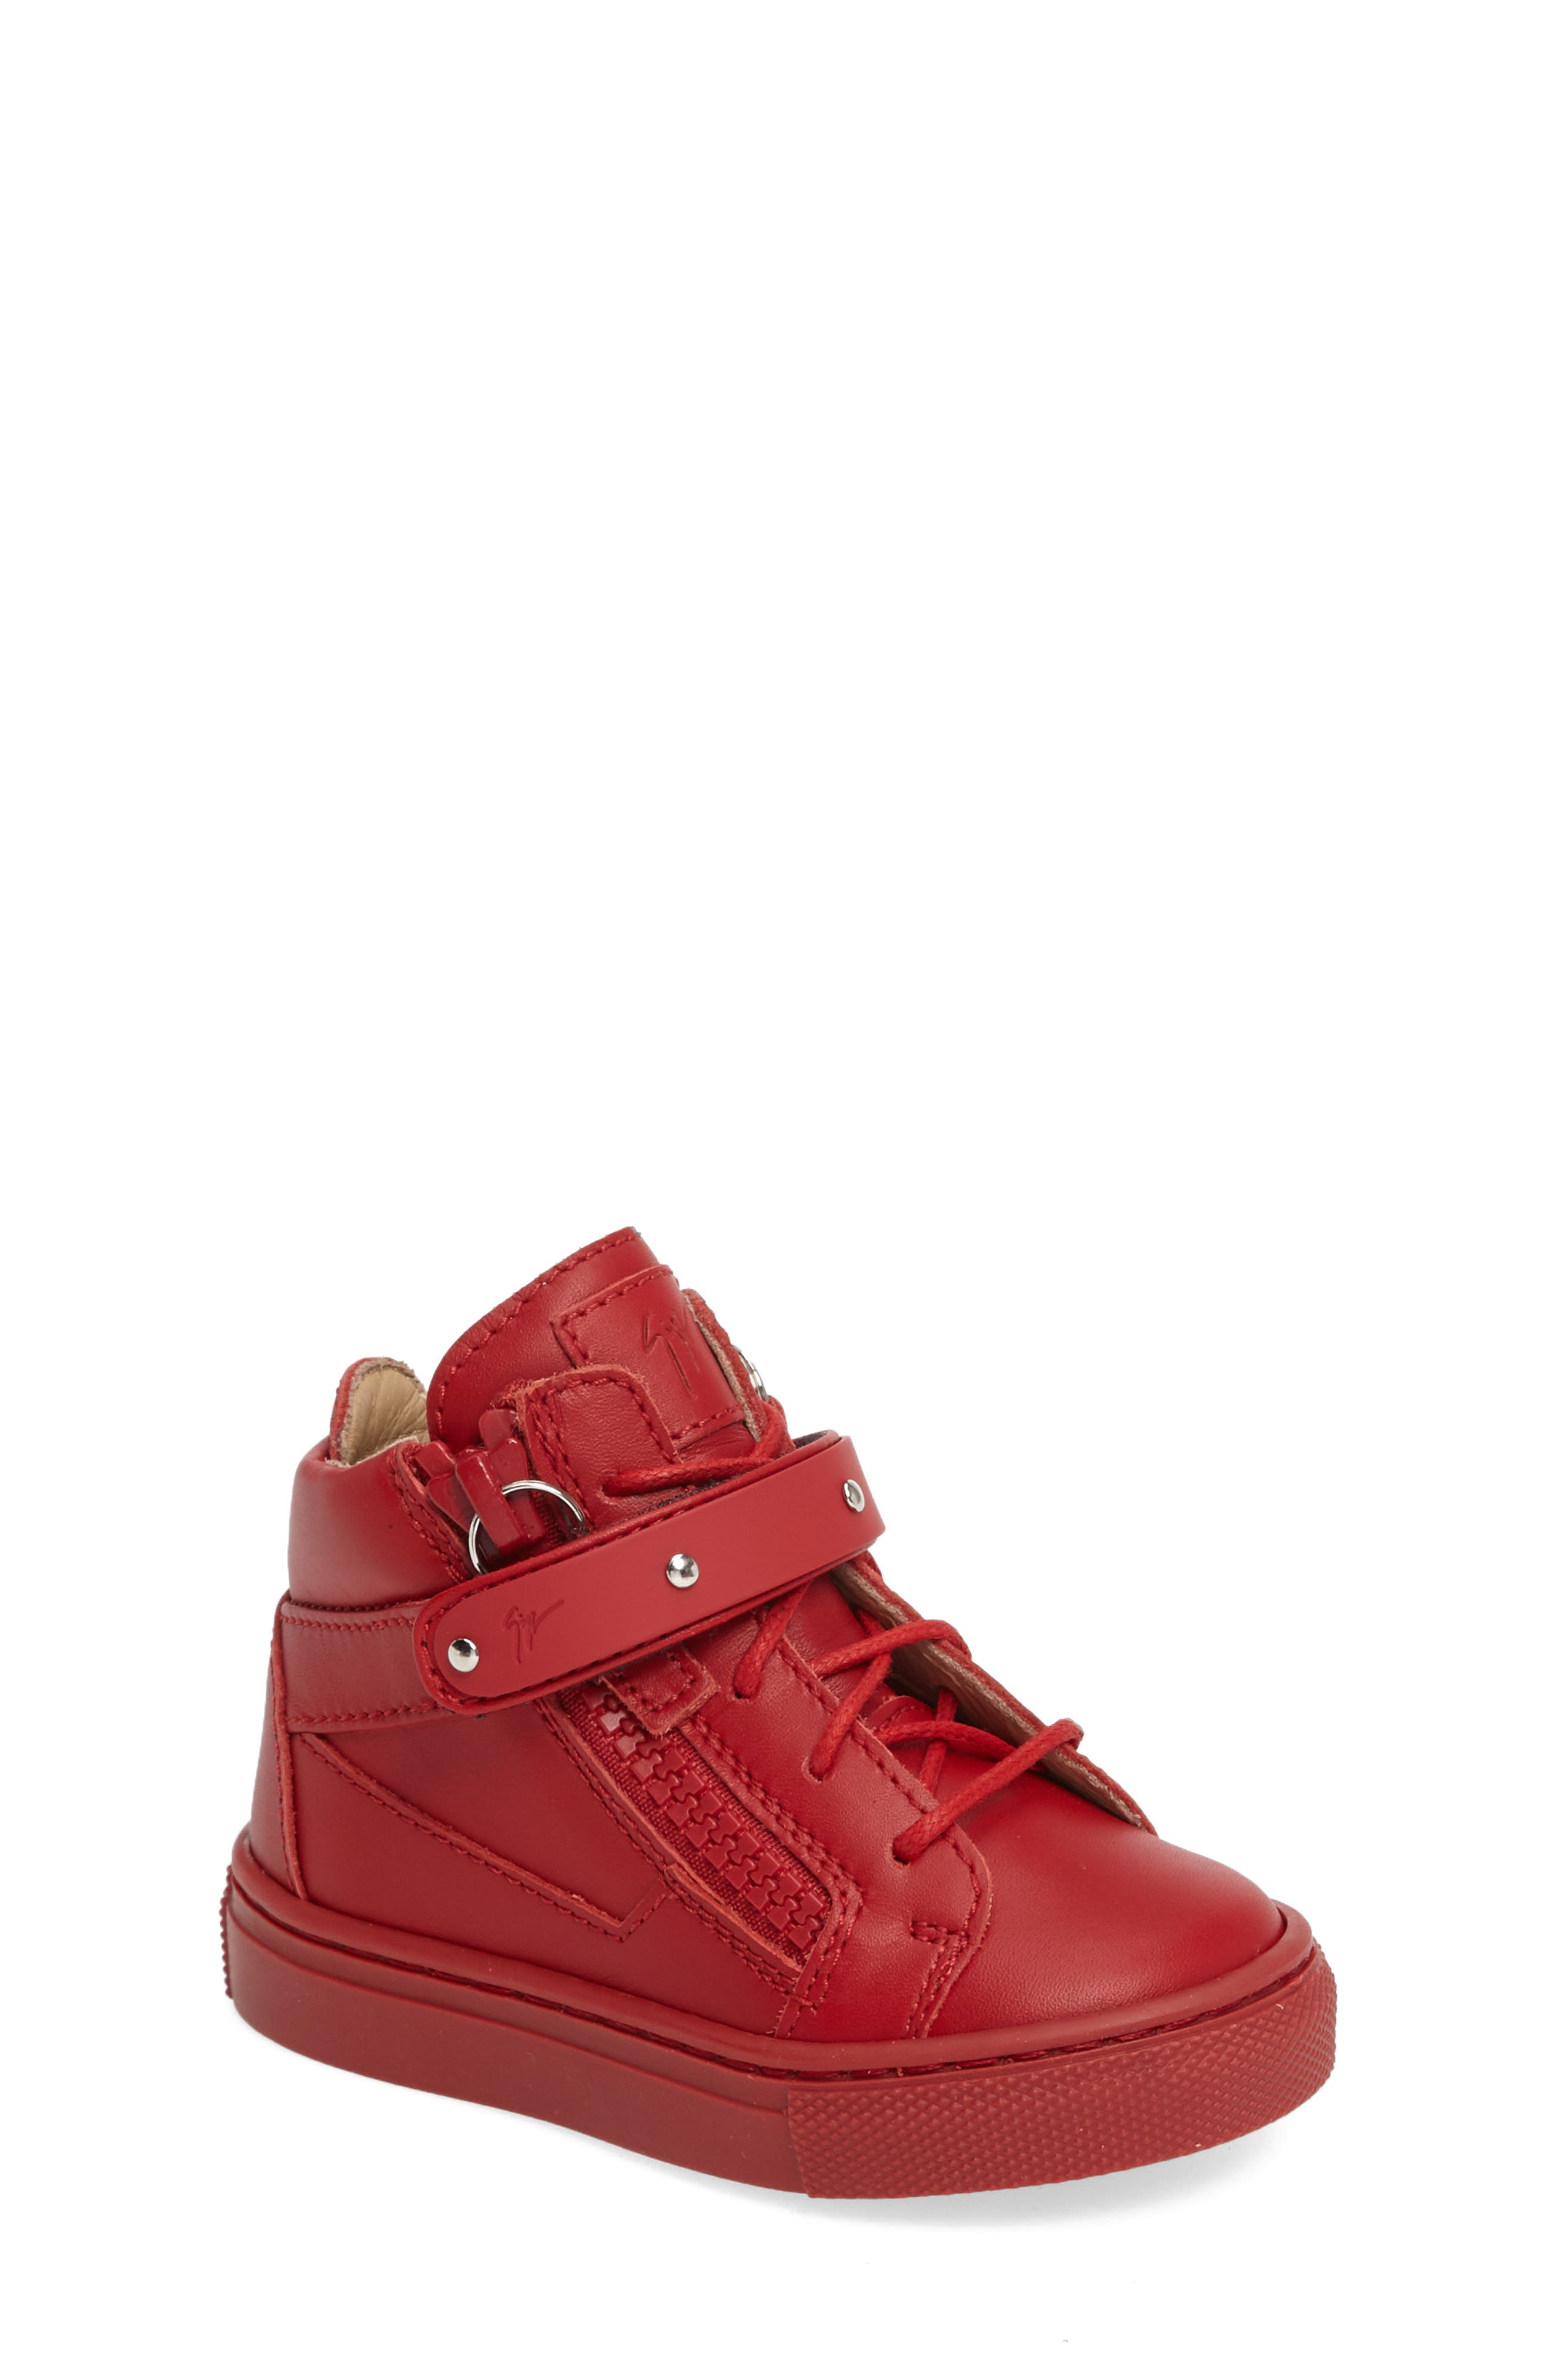 Taylor Junior High Top Sneaker,                         Main,                         color, Red Leather